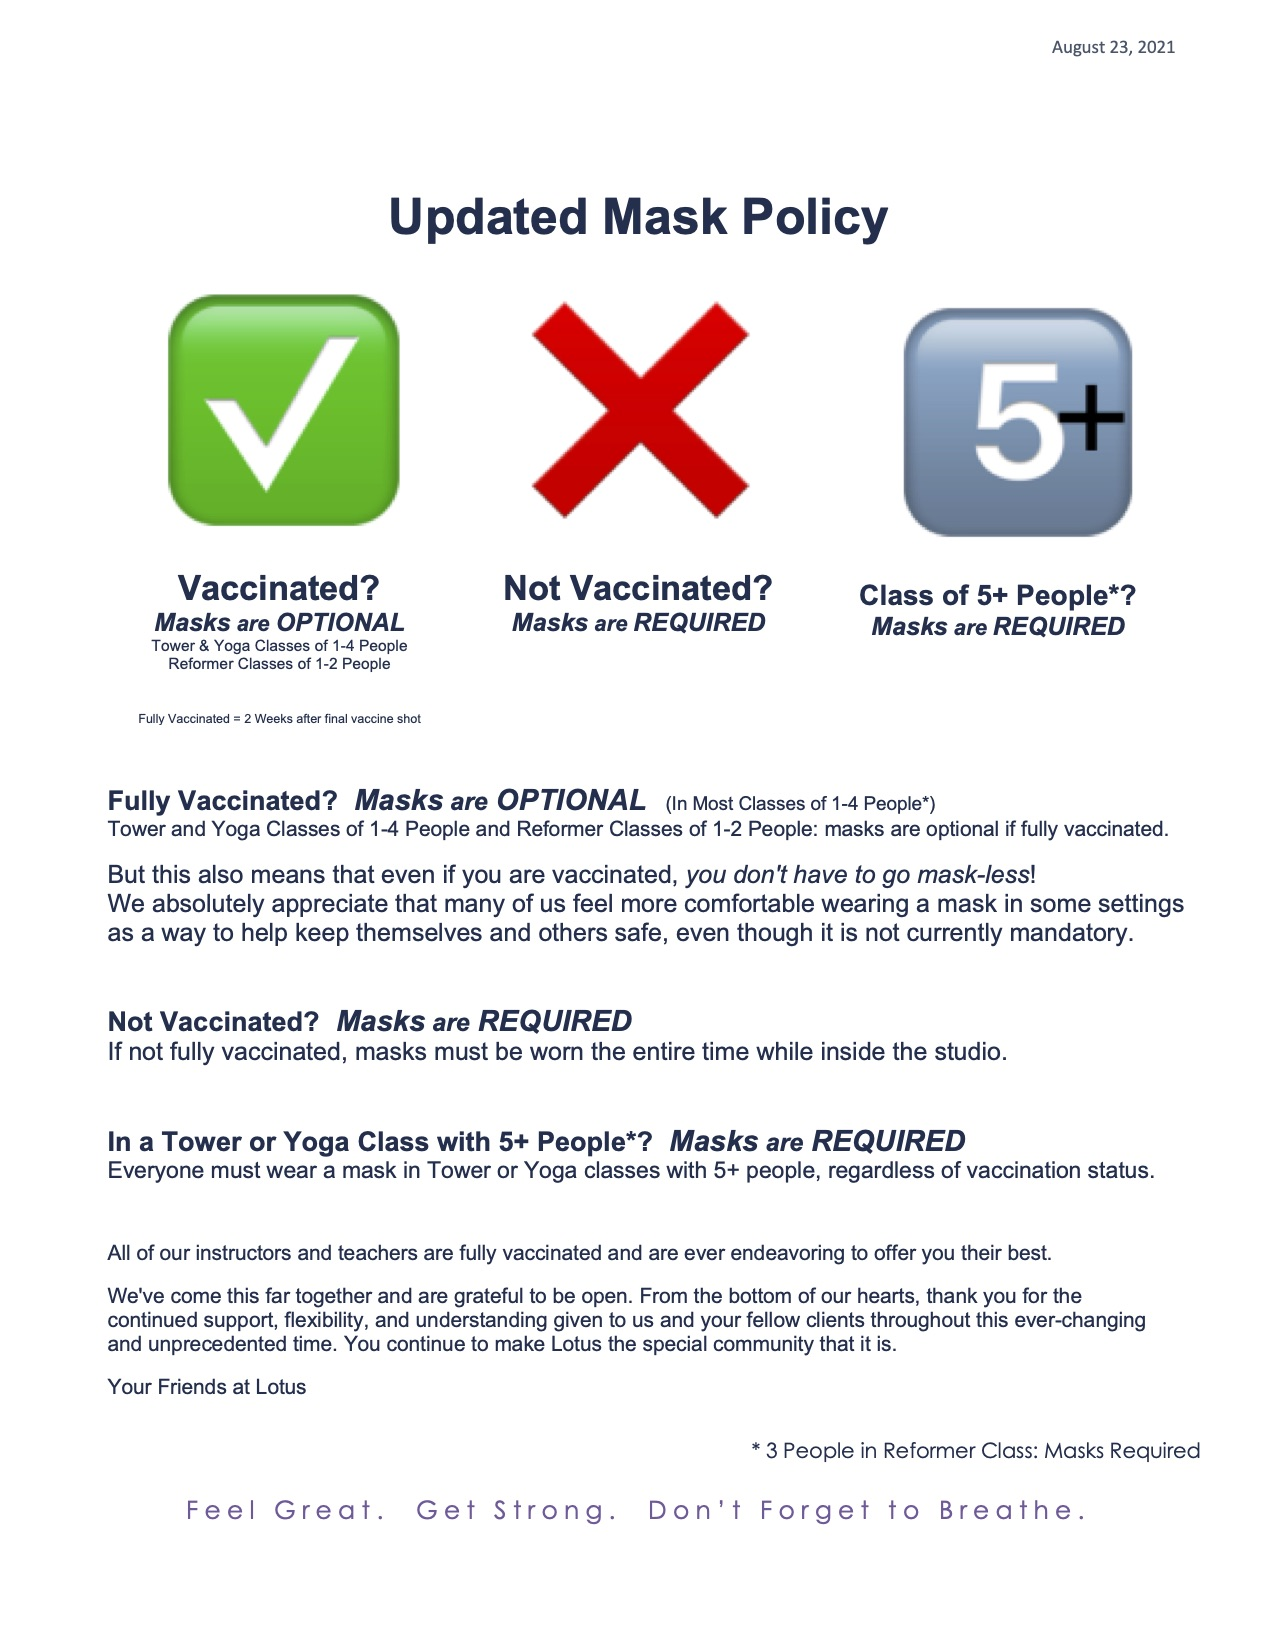 Updated Mask Policy_Aug 23 2021